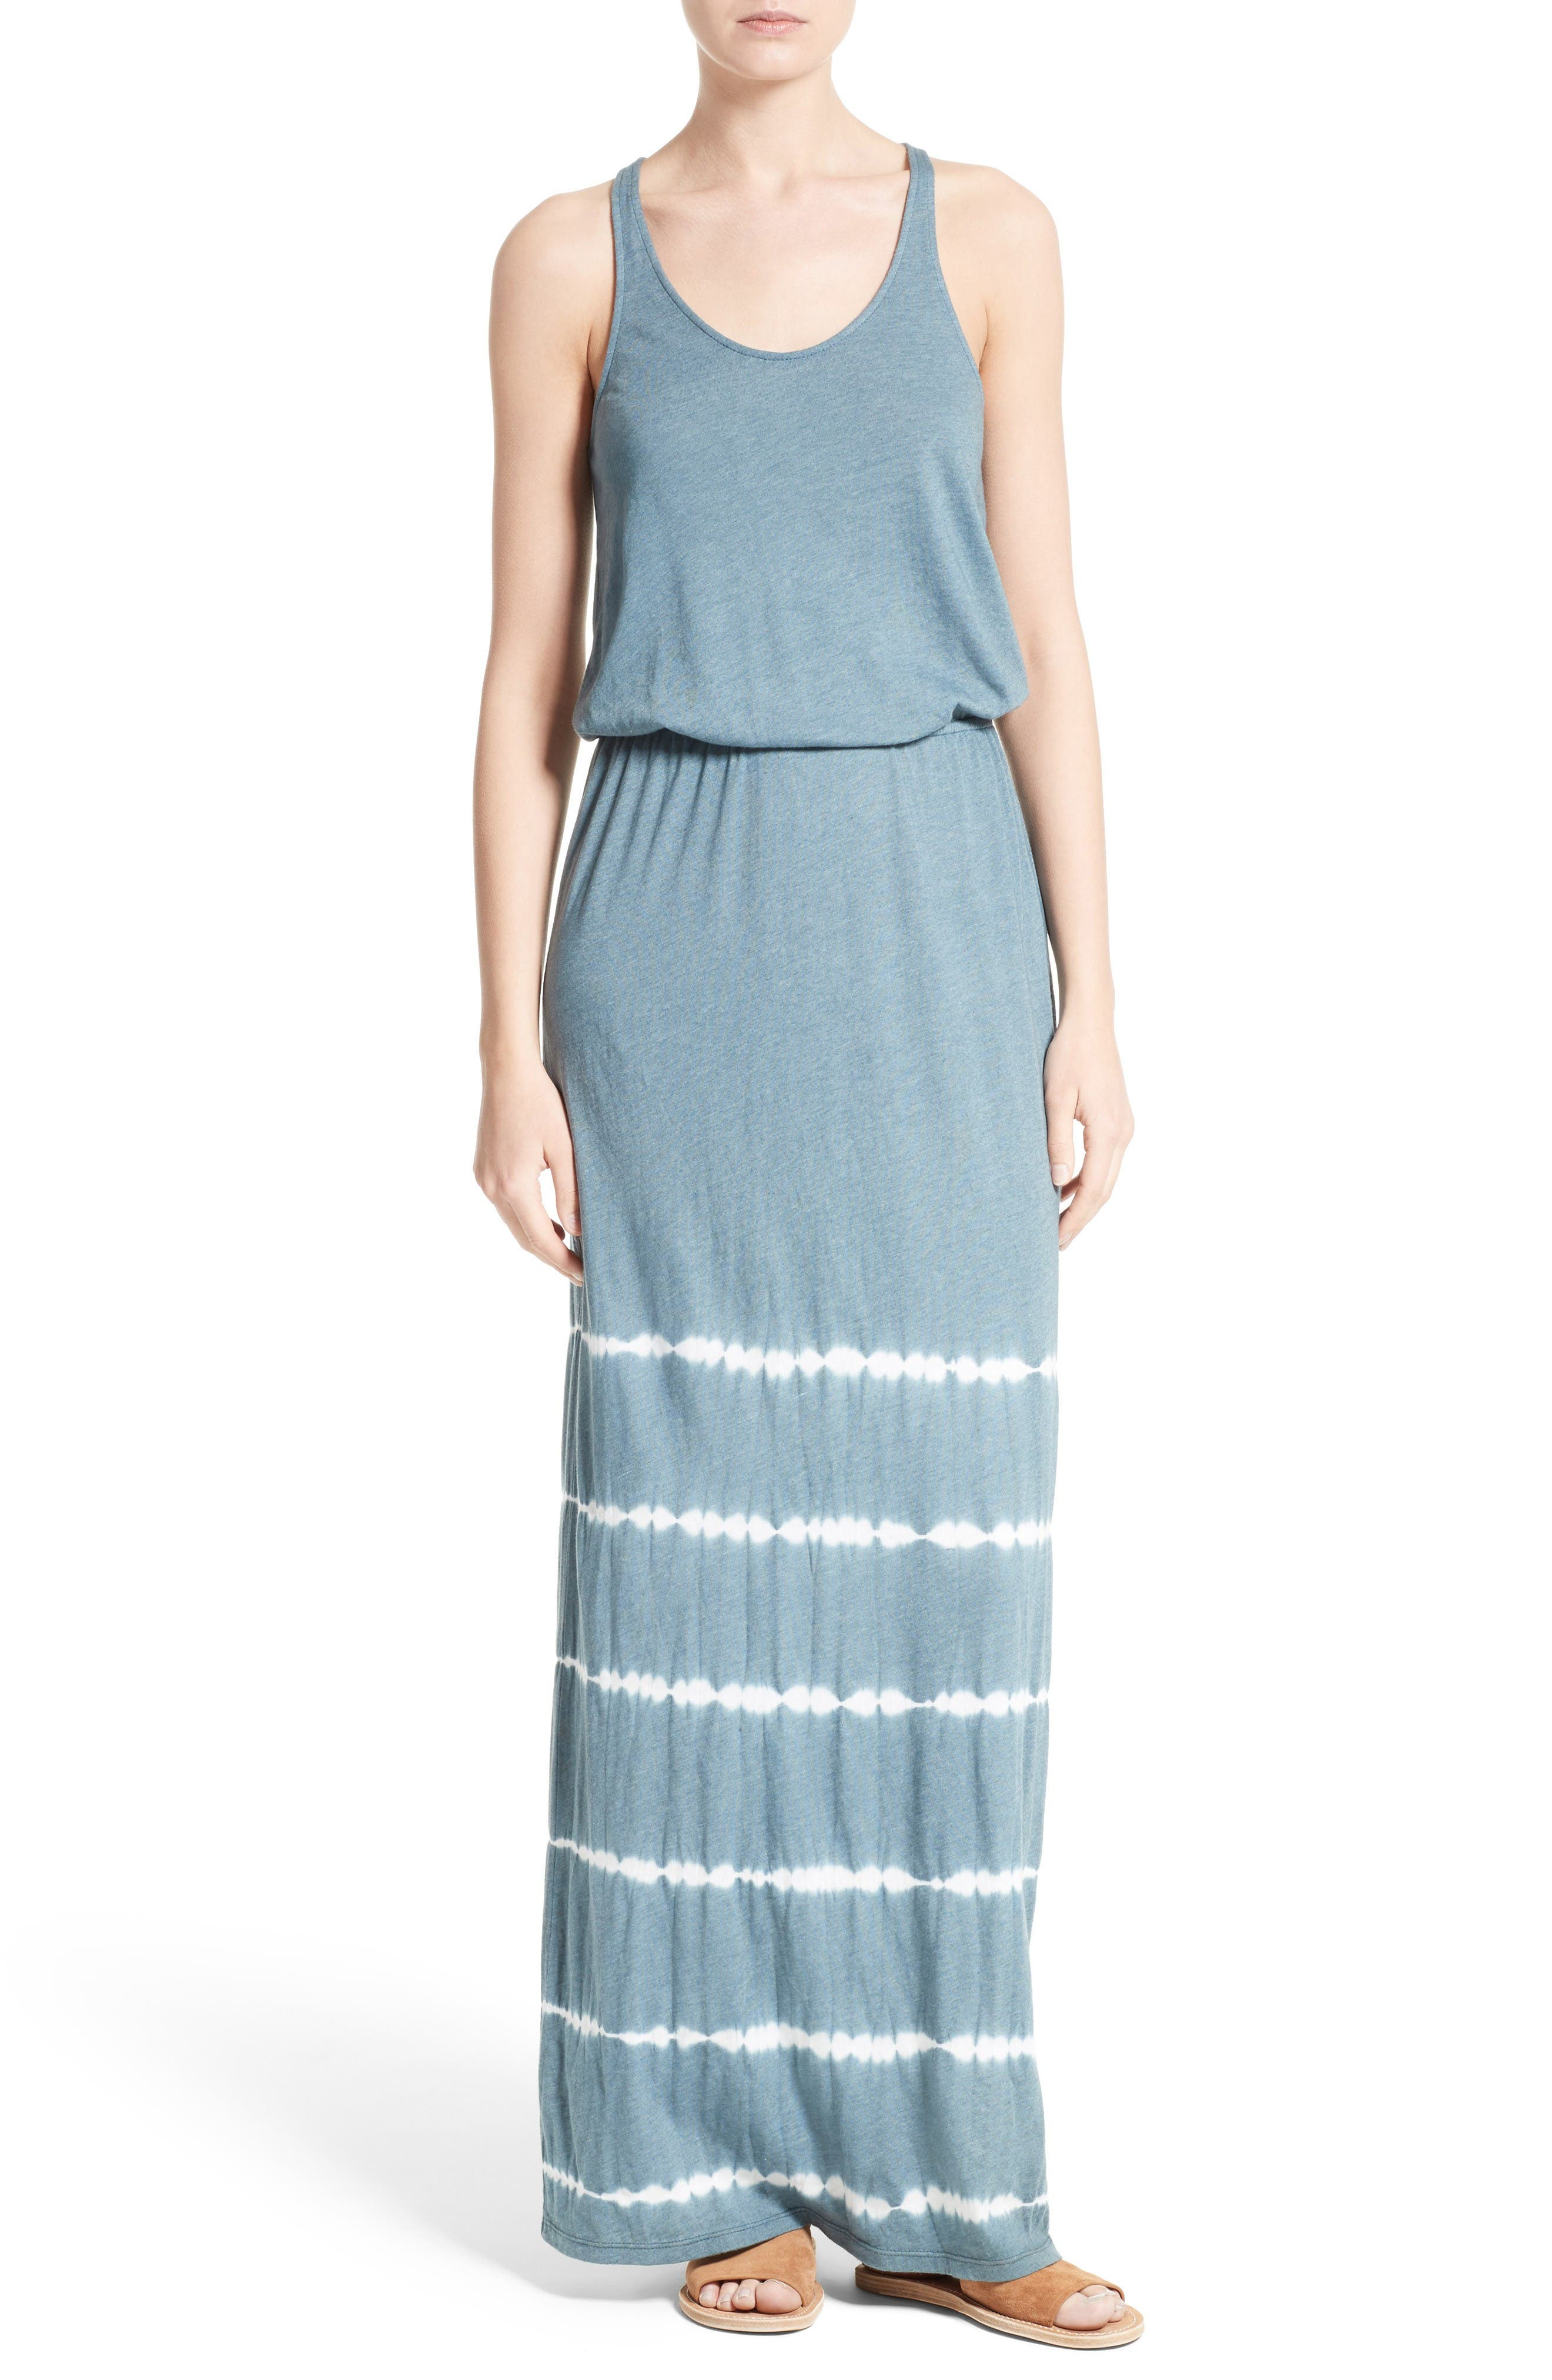 Soft Joie Ljiljana Tie Dye Jersey Maxi Dress